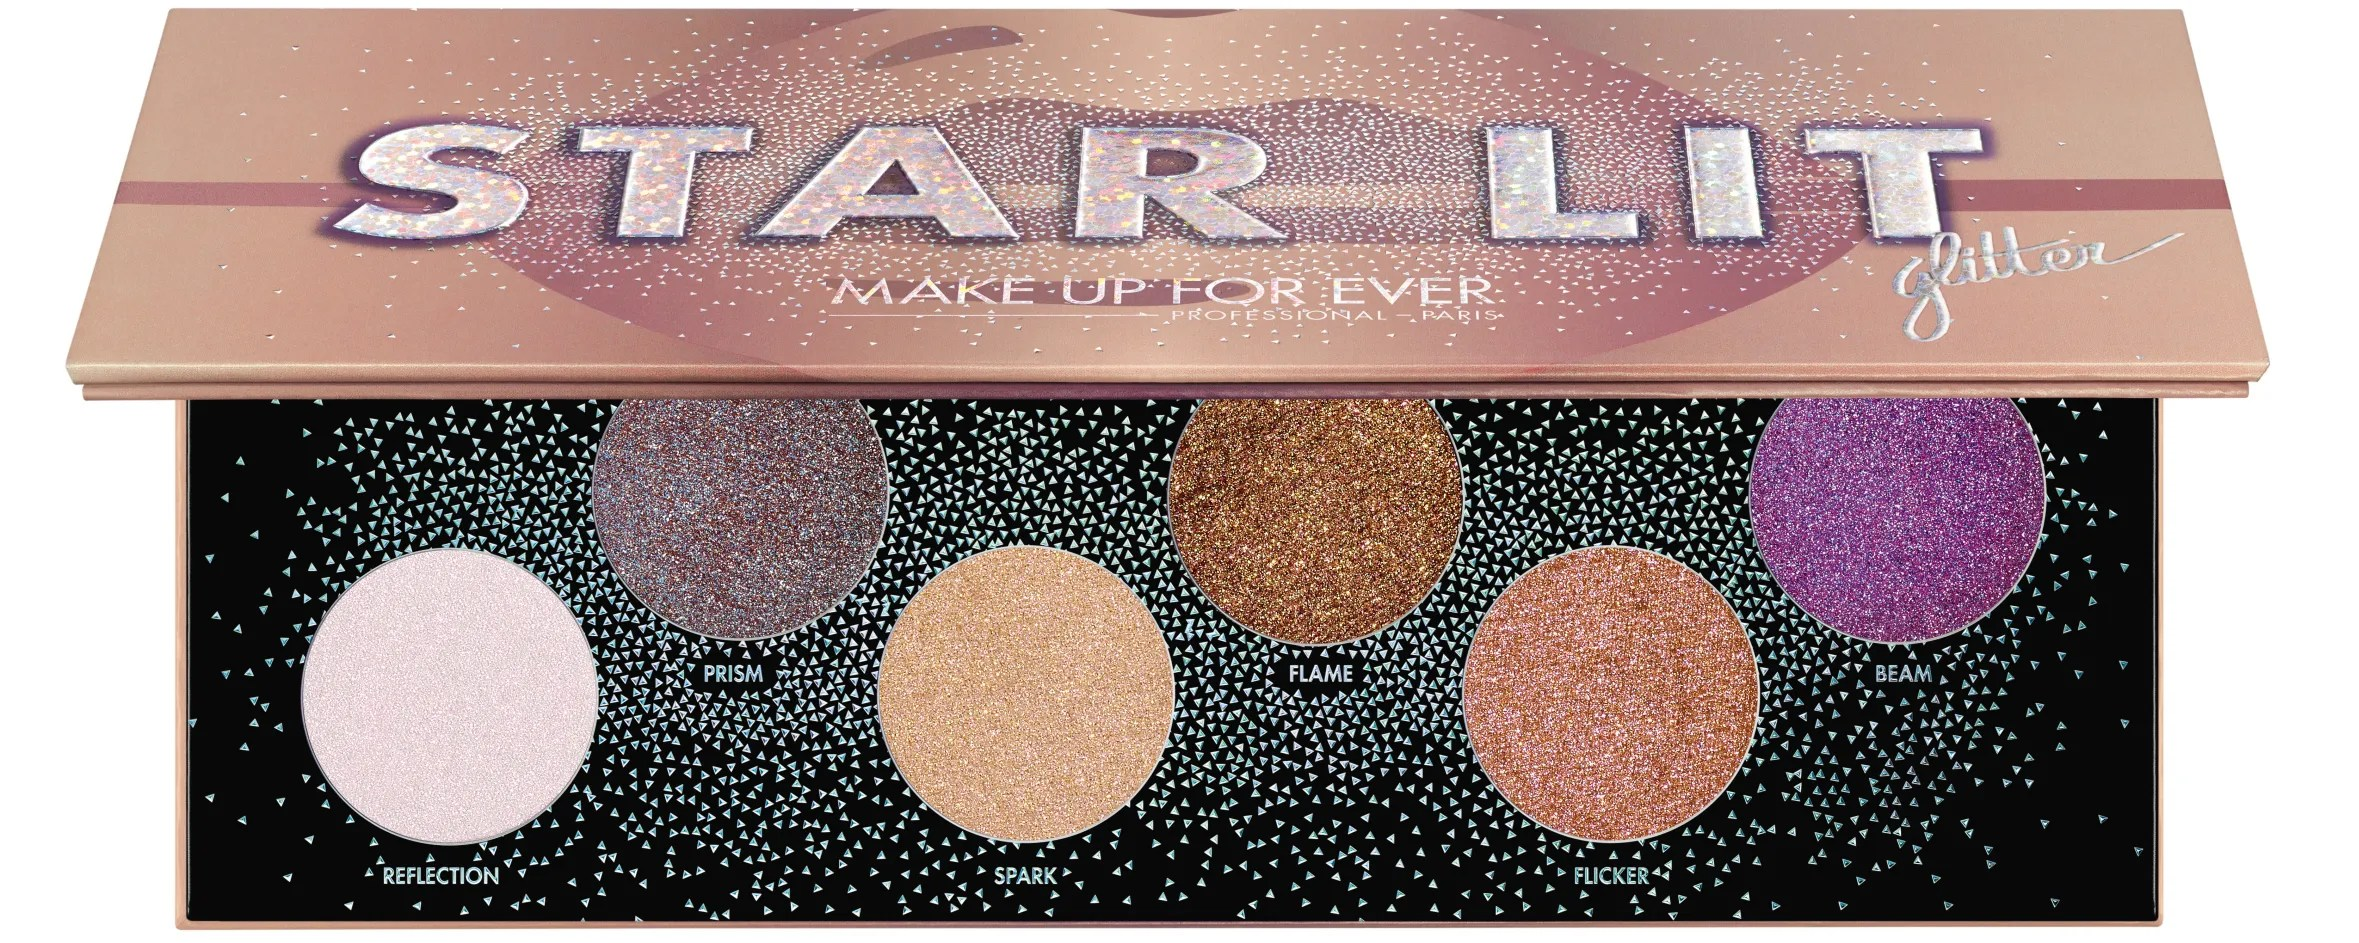 Lit En Palette Make Up For Ever Releases Star Lit Glitter Eyeshadow Palette